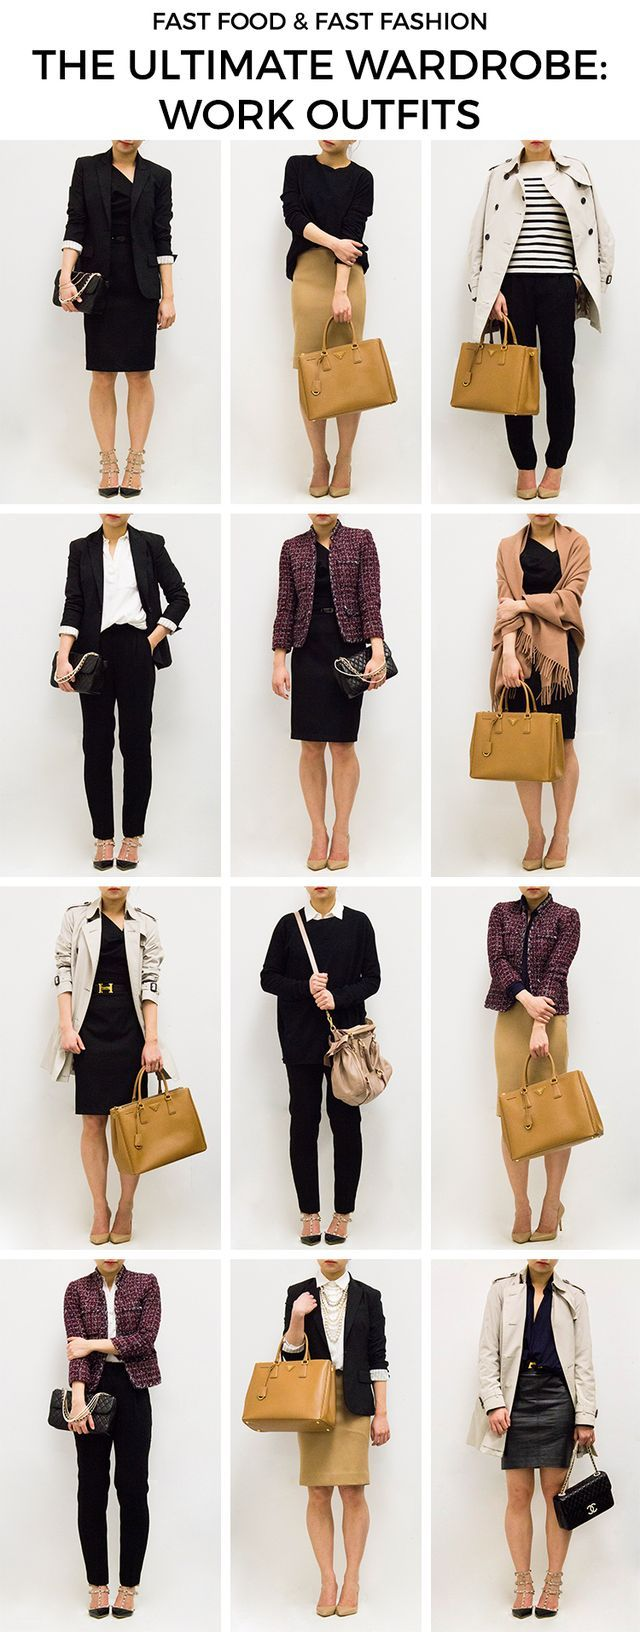 """Building on the original 12 """"closet basics,"""" it doesn't take much—just six more items—to create new outfits that are suitable for business casual work environments. I recommend adding (1) drapey blous"""